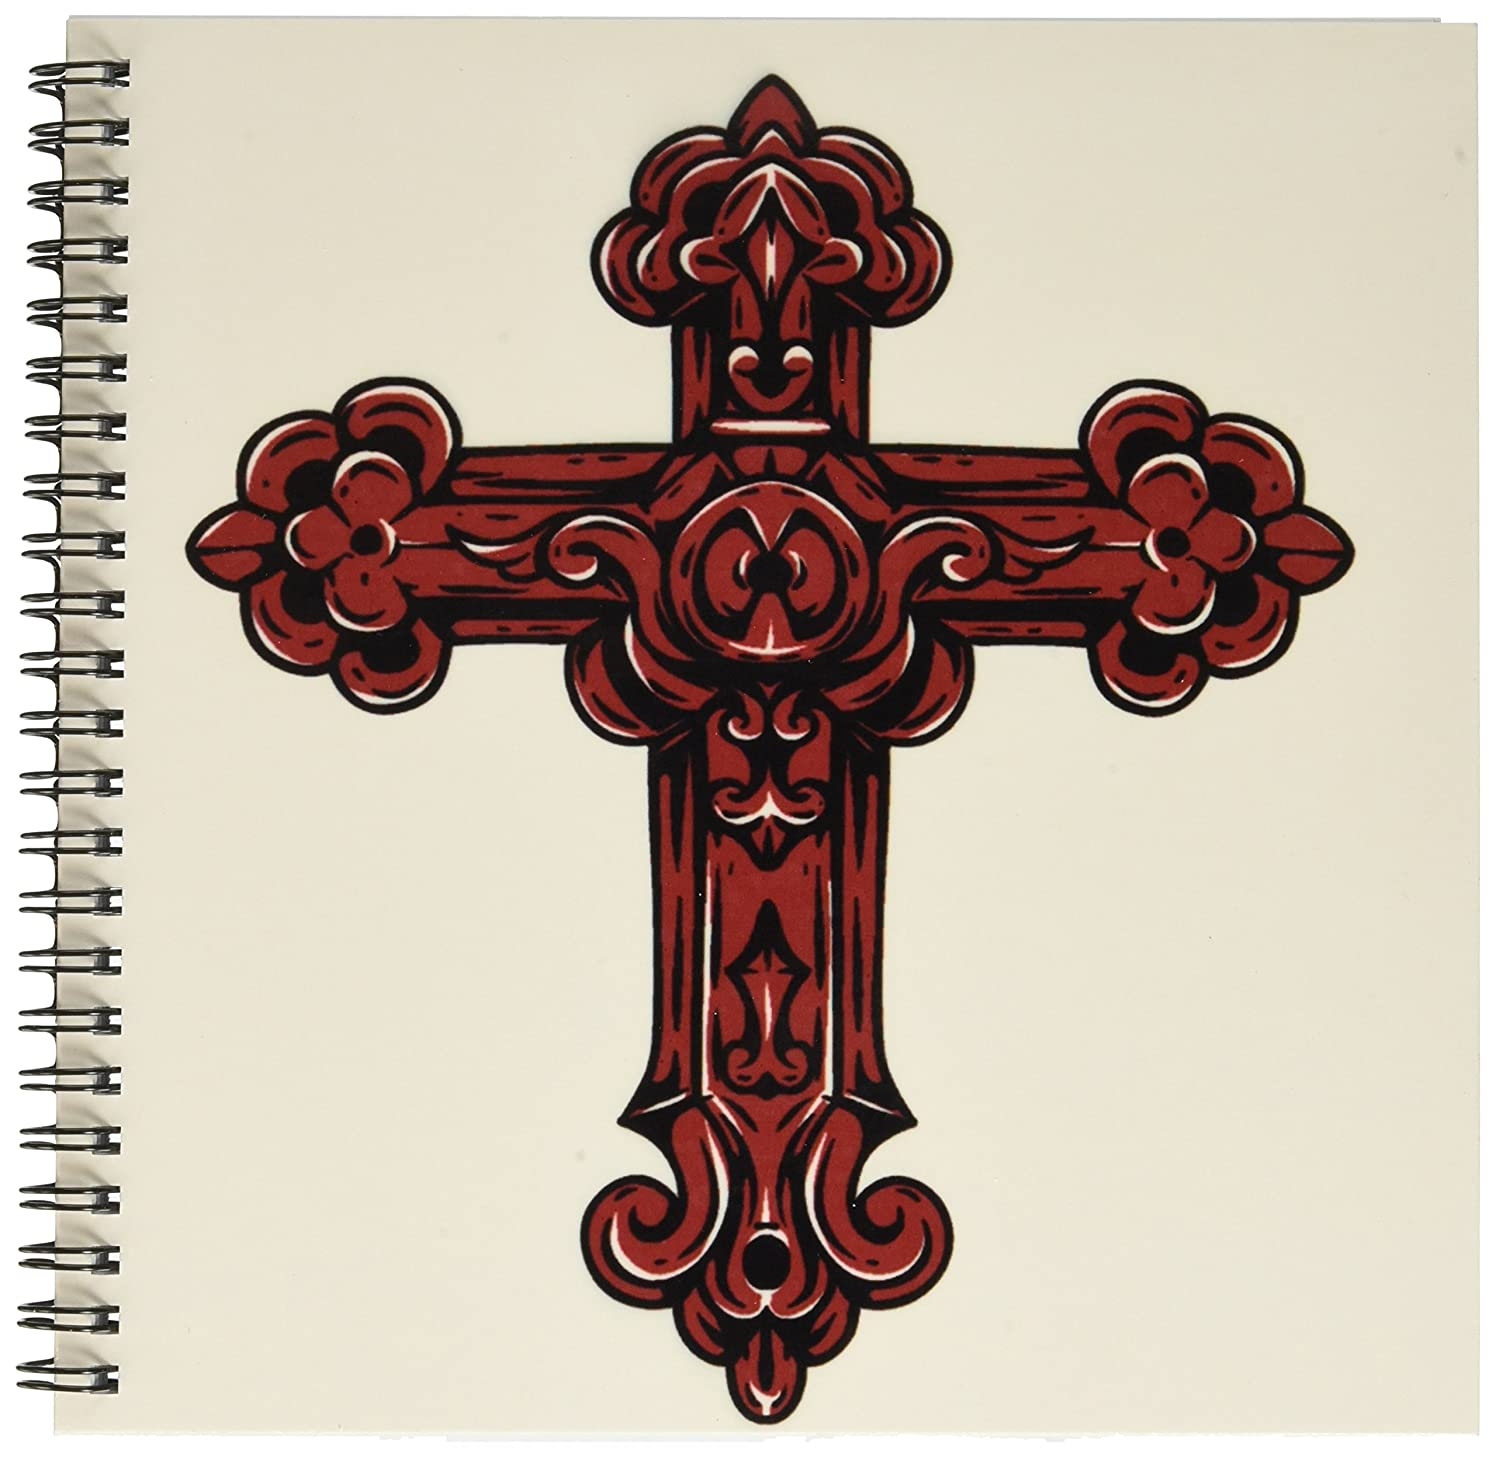 3dRose db_78346_1 Rose Colored Decorative Religious Cross Drawing Book, 8 by 8-Inch